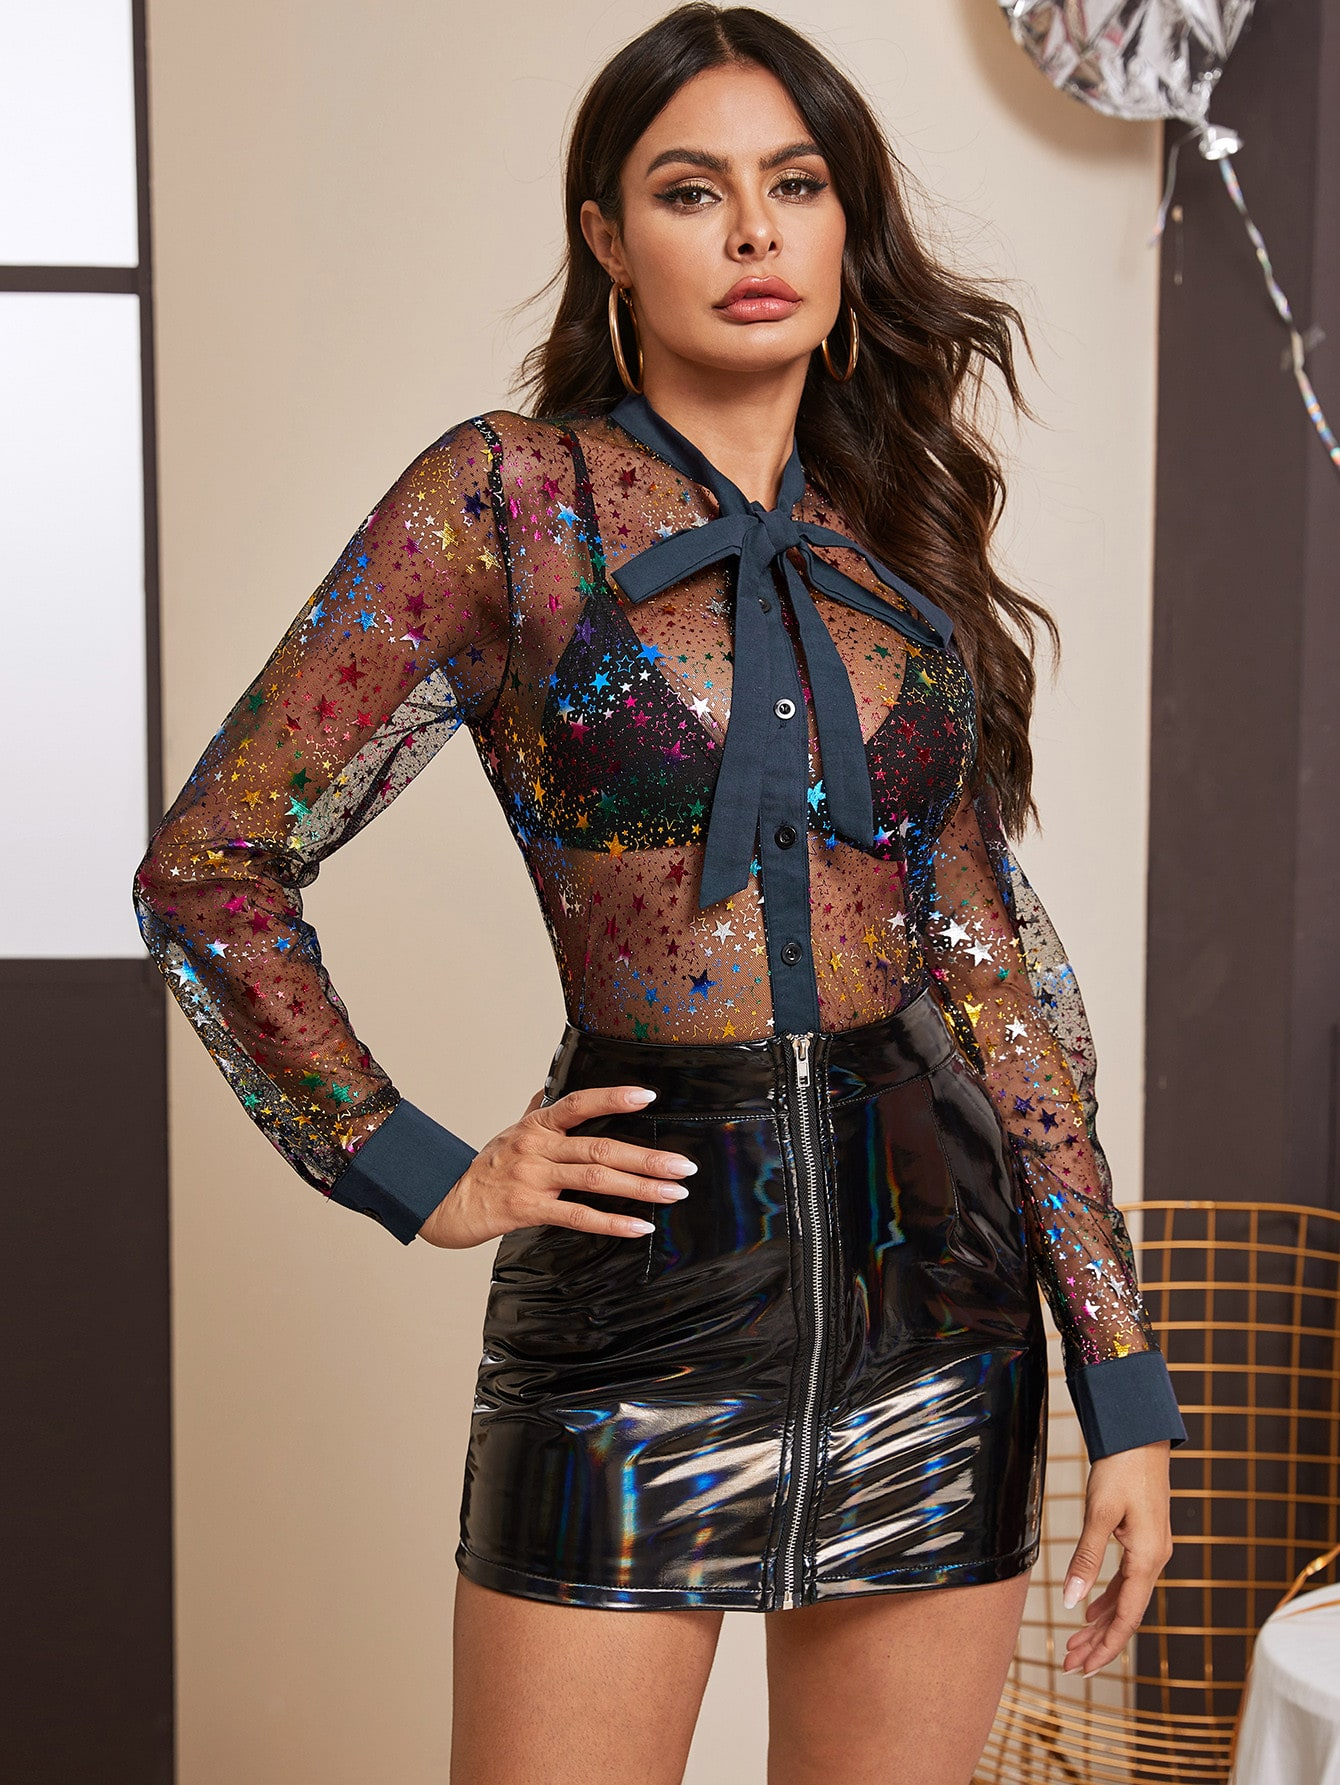 Amazing breasts in sheer blouse